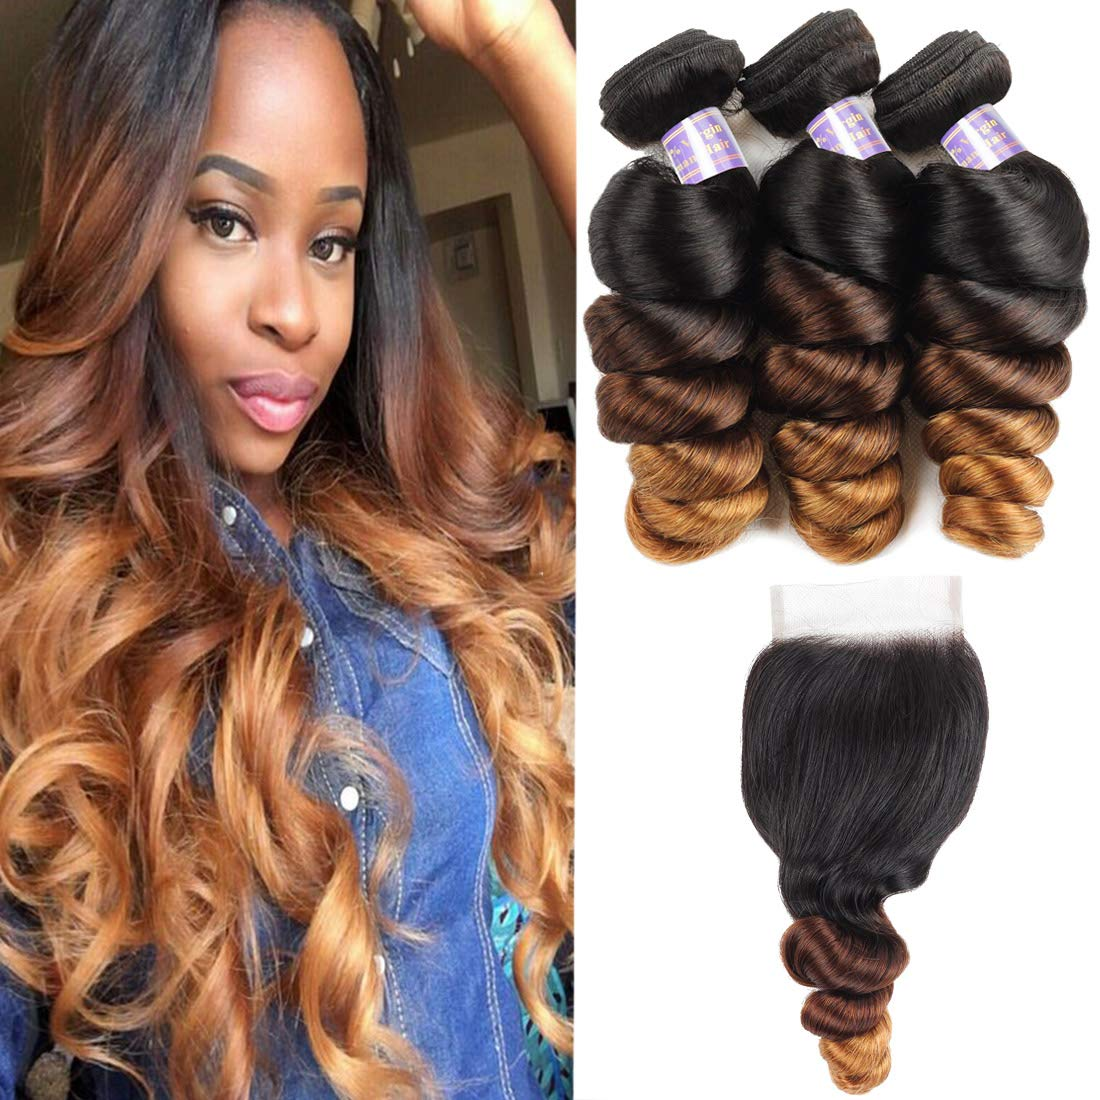 Allove Hair Brazilian Loose Wave Ombre Bundles With Closure Free Part (12 14 16+12inch) Virgin Remy Hair 10a 3 Tone 1B/4/27 Ombre Weave Human Hair Bundles With 4X4 Lace Closure